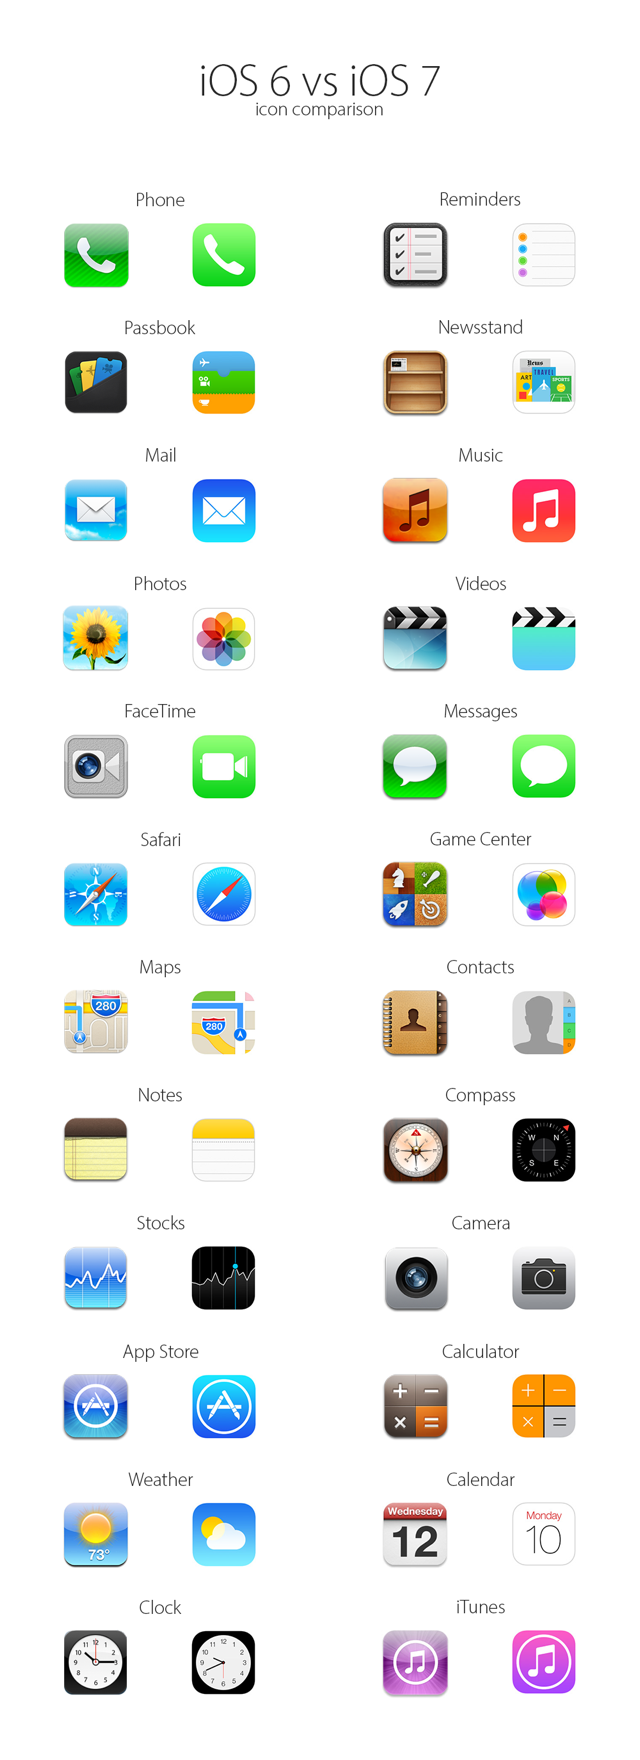 iOS 6 vs iOS 7 - icons